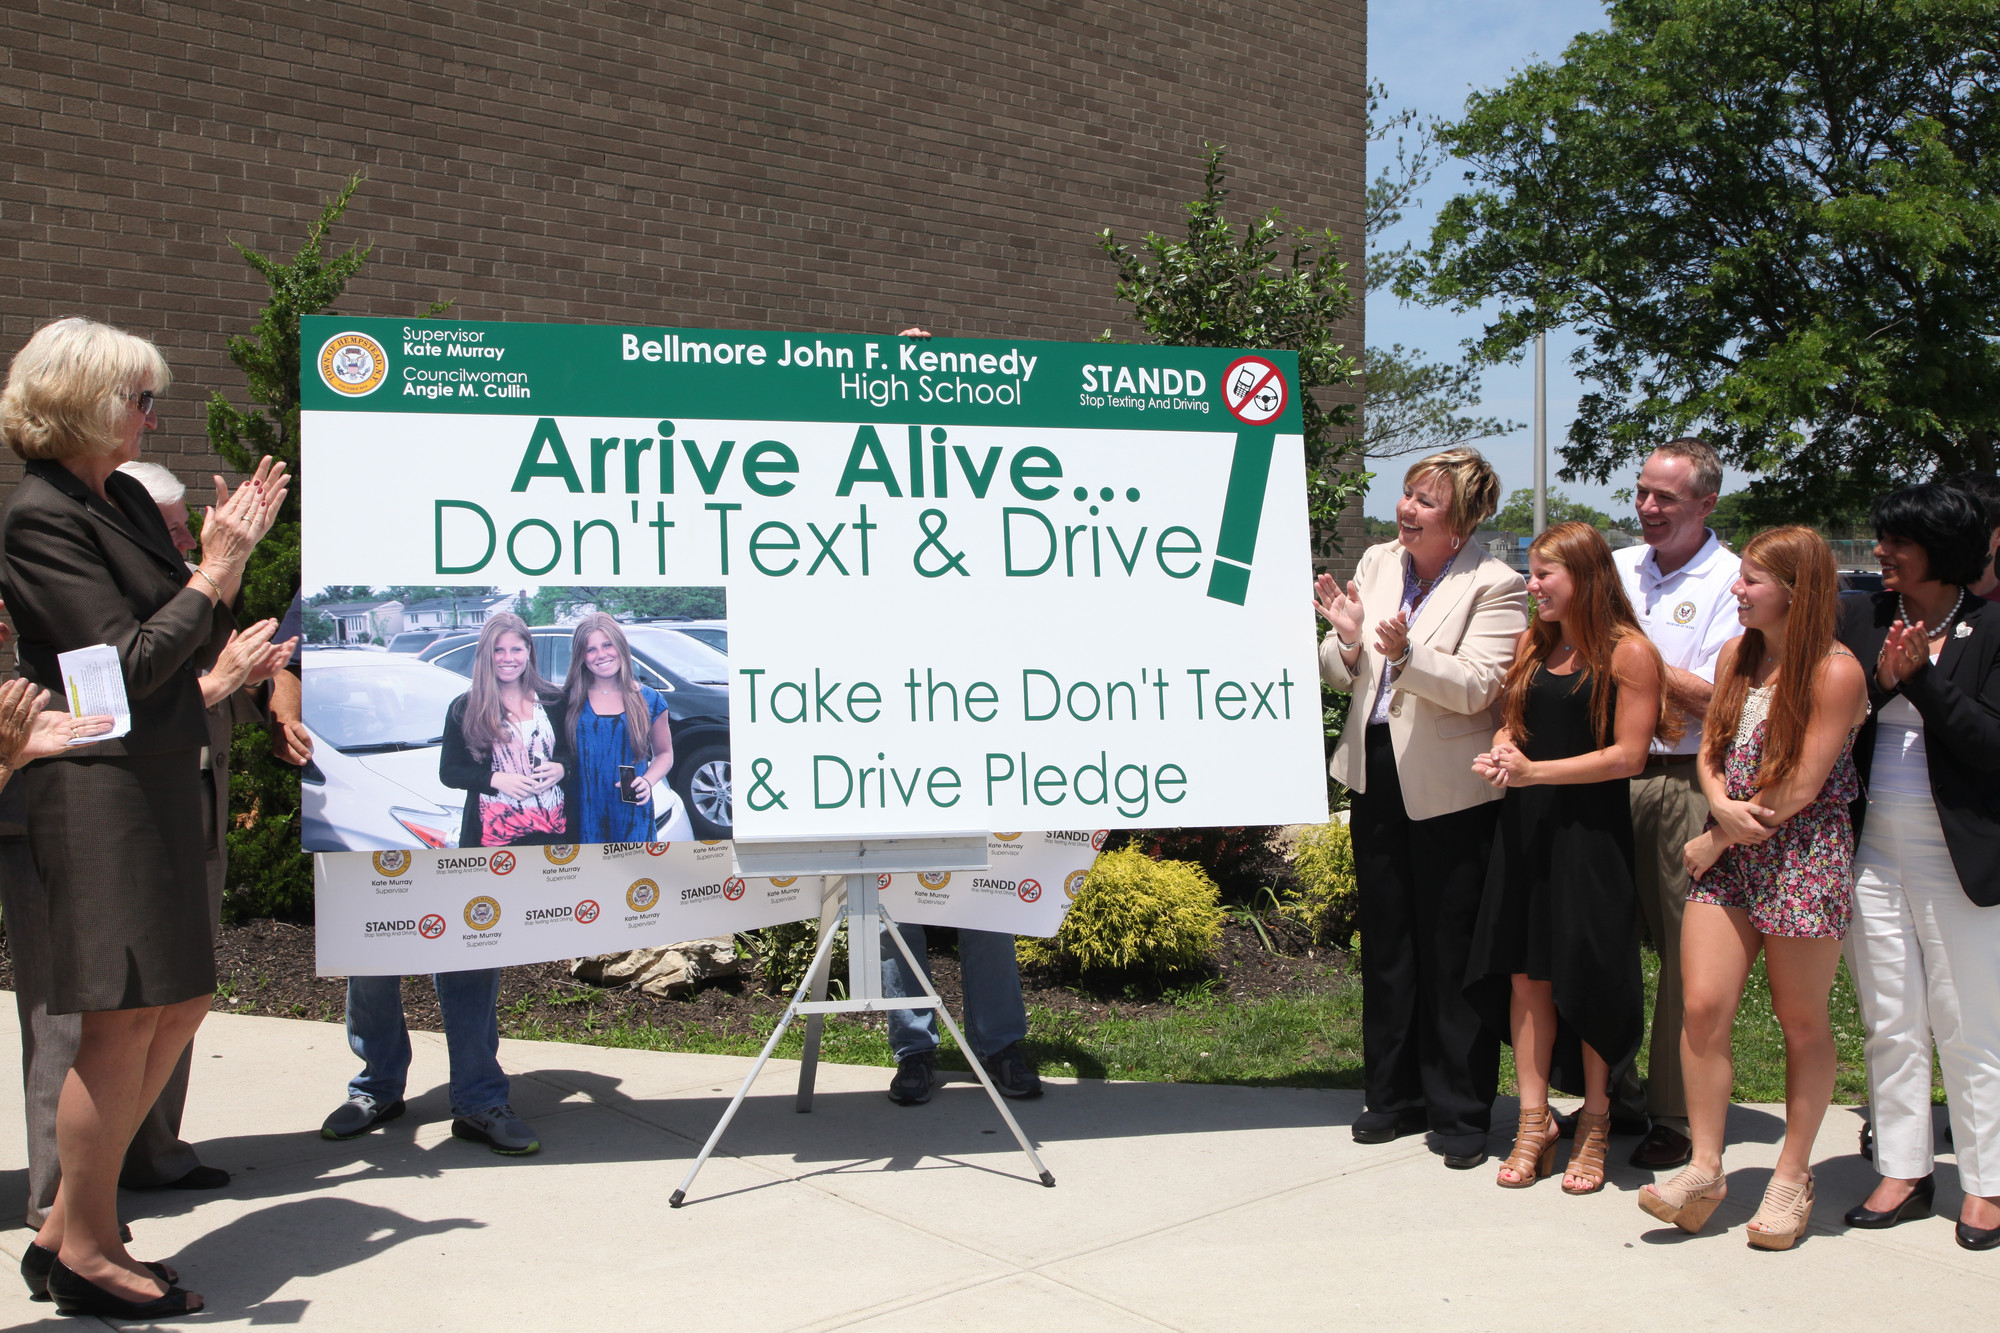 A sign produced by town workers that Hempstead Town Supervisor Kate Murray said will be seen by hundreds of students daily at Kennedy High School was unveiled on June 18 – the kickoff of a new public awareness campaign about texting and driving.